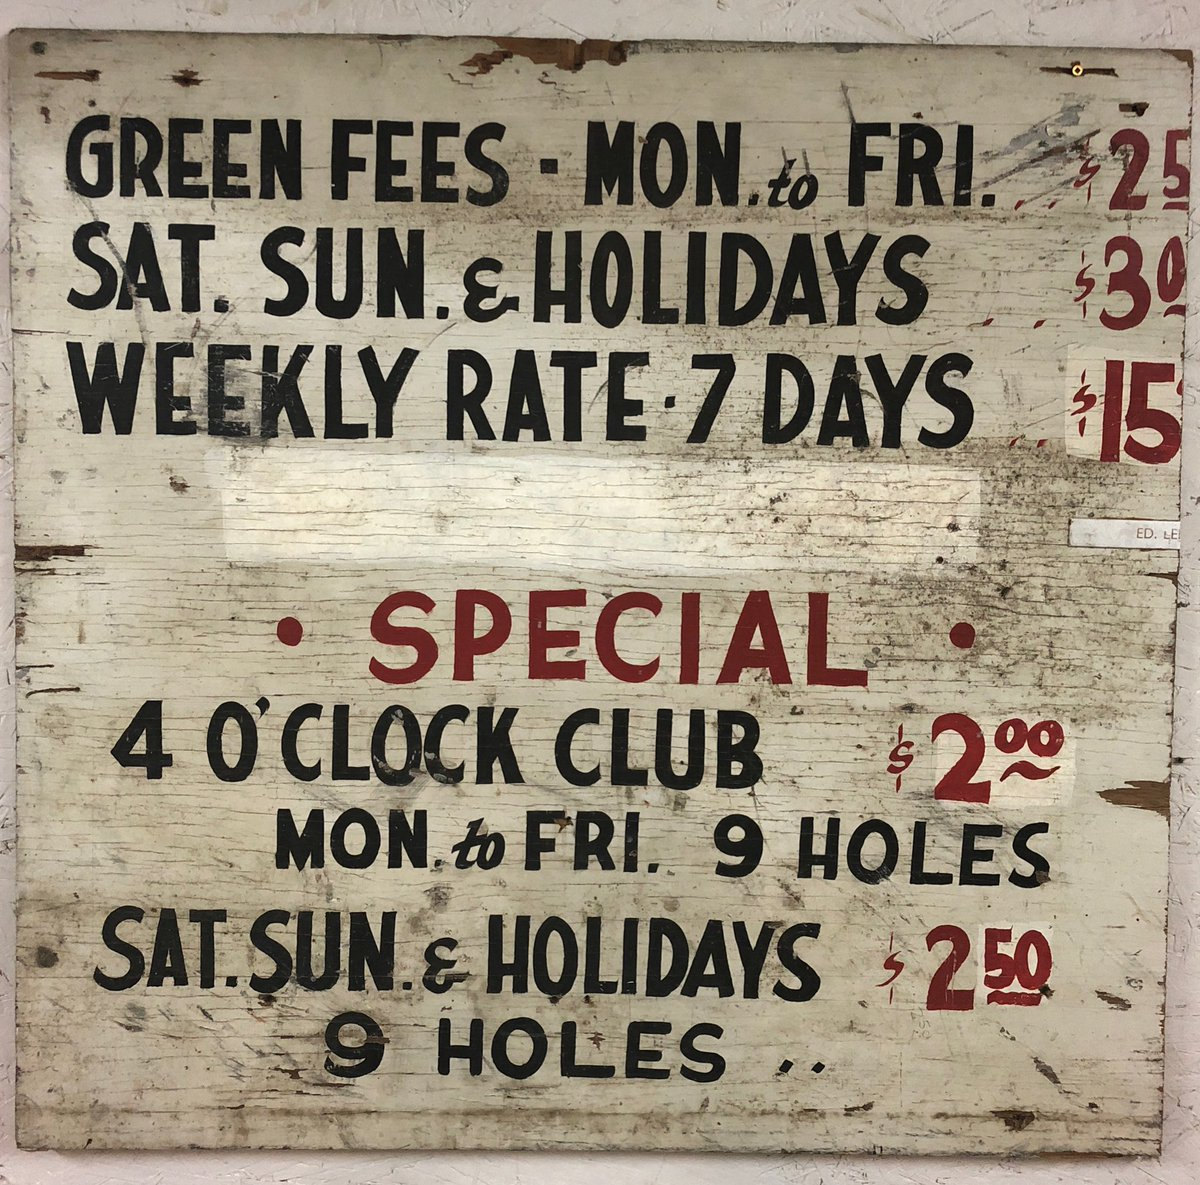 Another cool old sign we recently found 😎   This is from sometime around the late 60s or early 70s. $2 green fees! https://t.co/0JpHSl3Qir